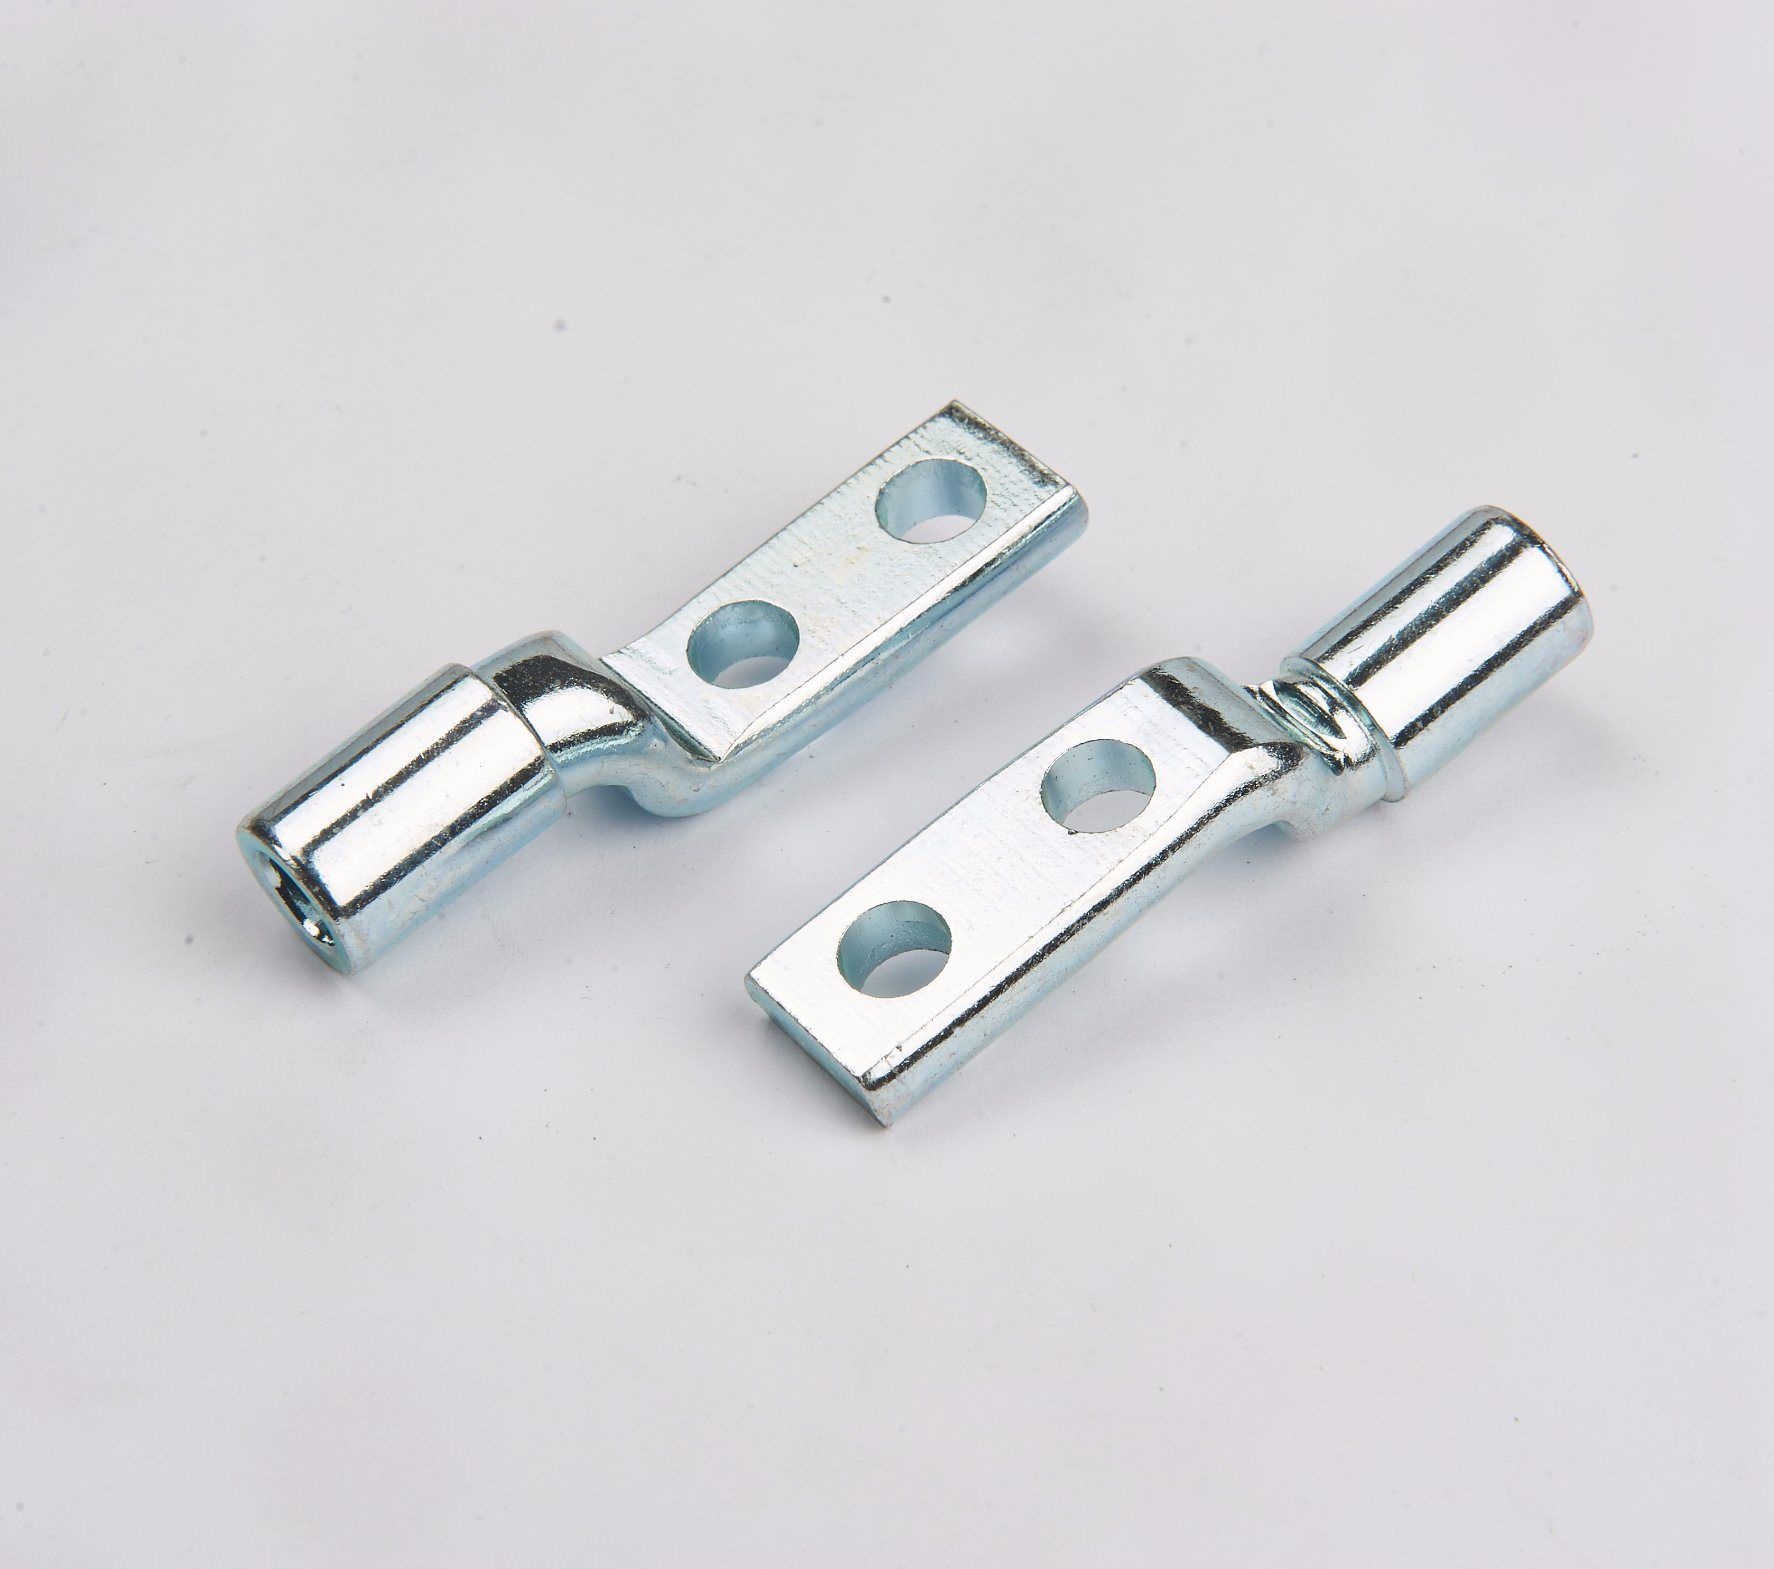 OEM, Customized, Non-Standard Fastener Bolt, High Strength Steel